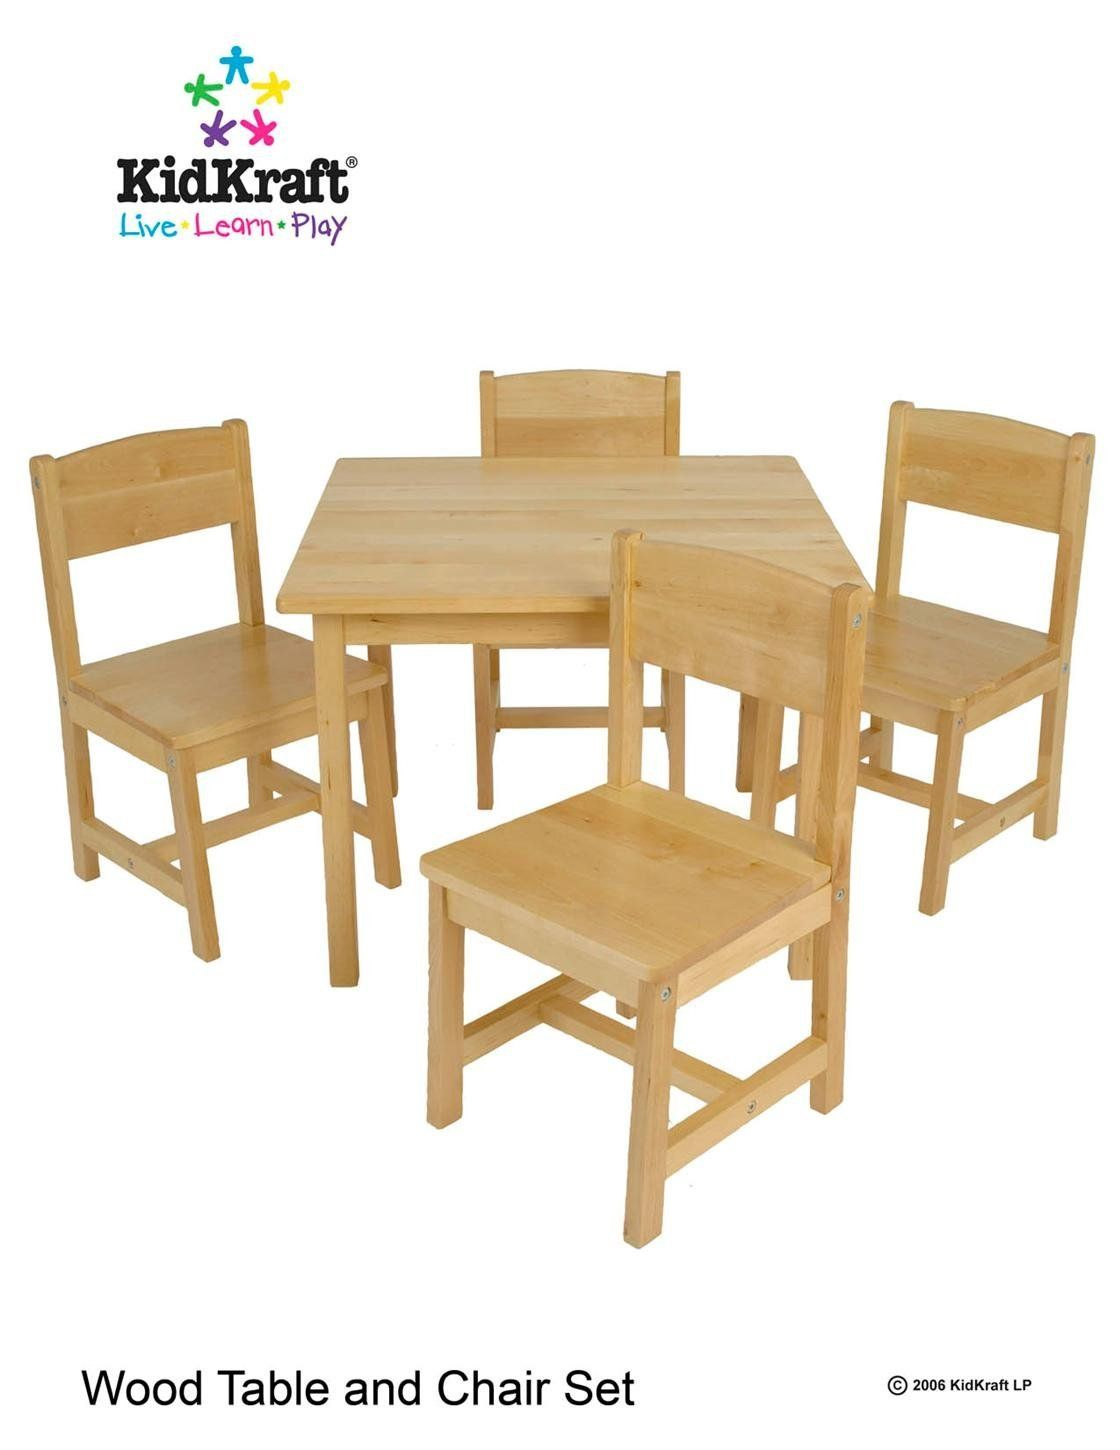 KidKraft Farmhouse Table And Chair Set   Natural: Amazon.ca: Home U0026 Kitchen